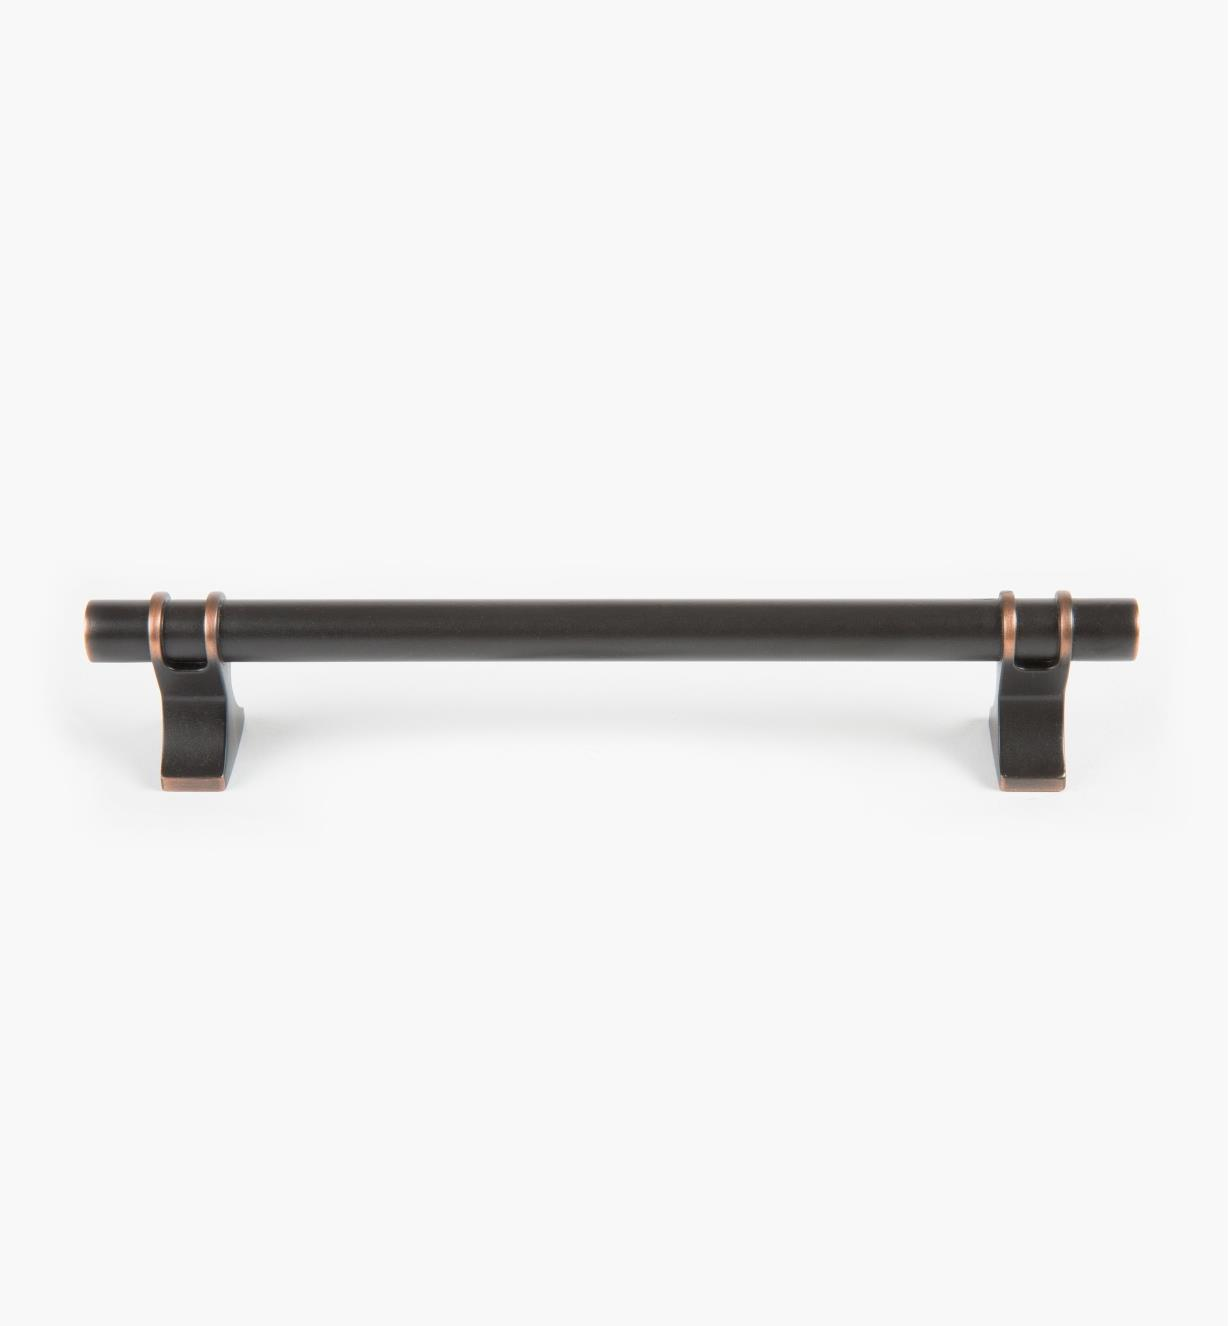 02A1439 - Davenport Oil-Rubbed Bronze 160mm Handle (198mm), each